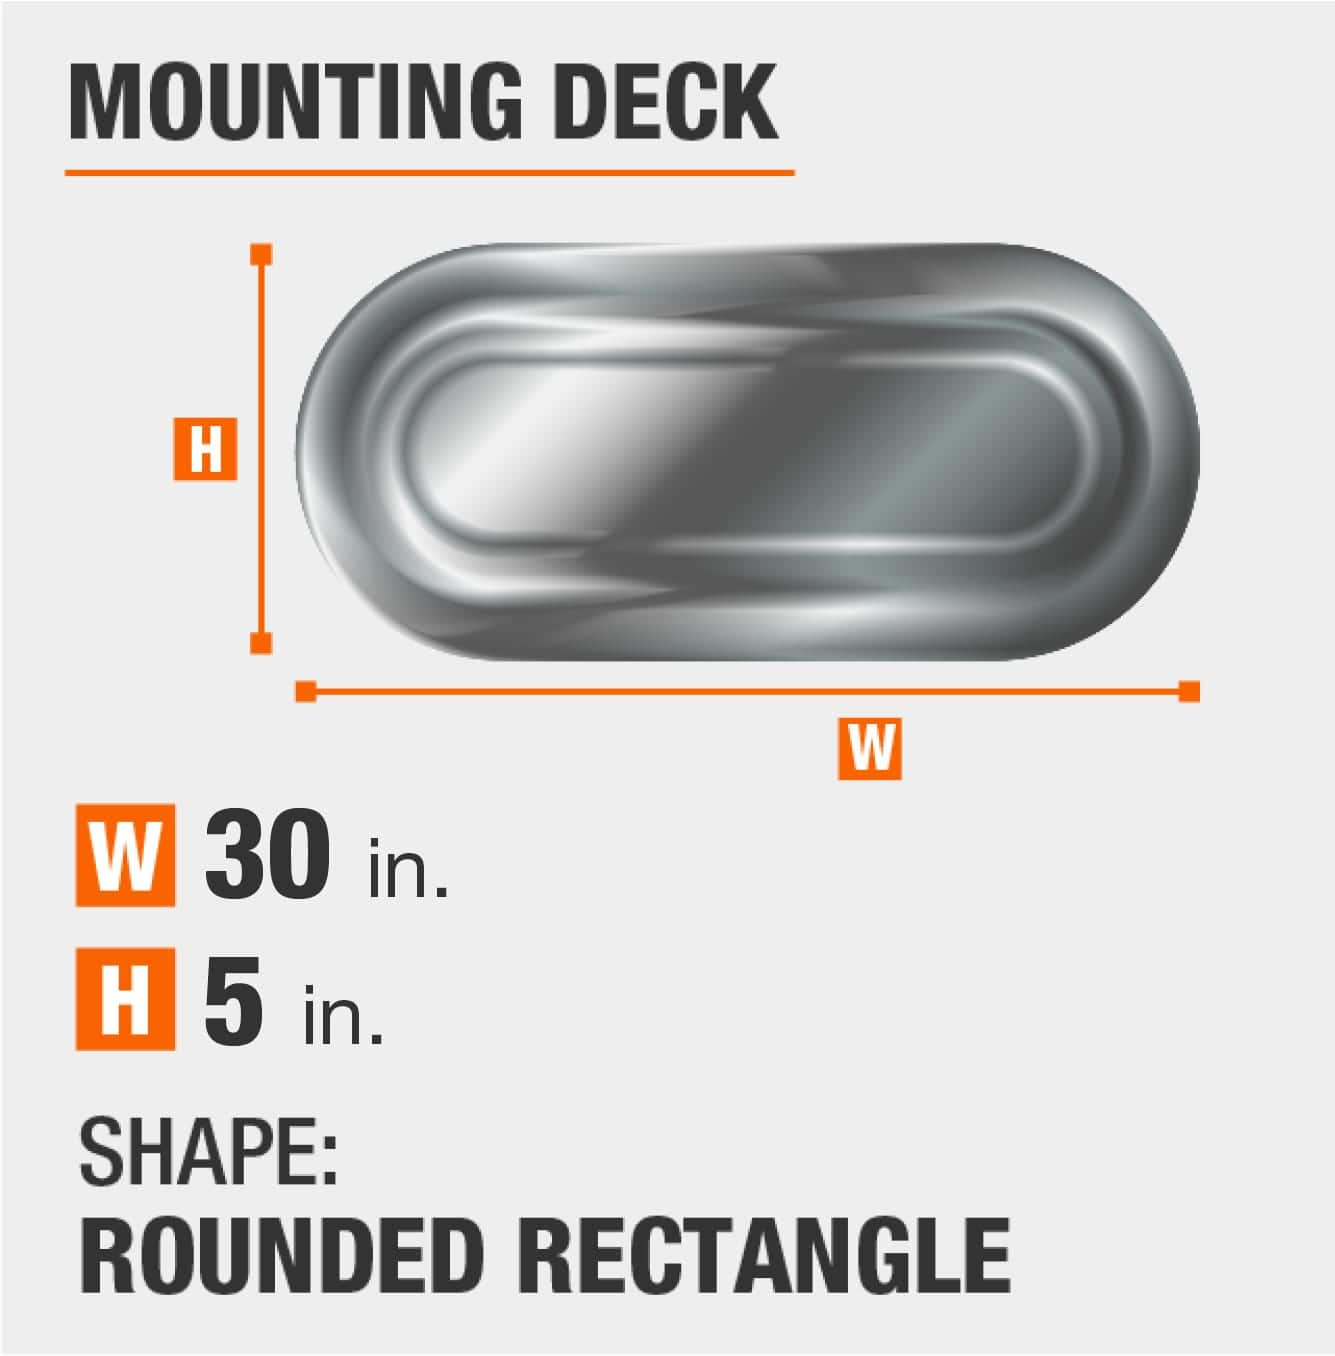 mounting deck is rectangular with round sides and 5 inches by 30 inches